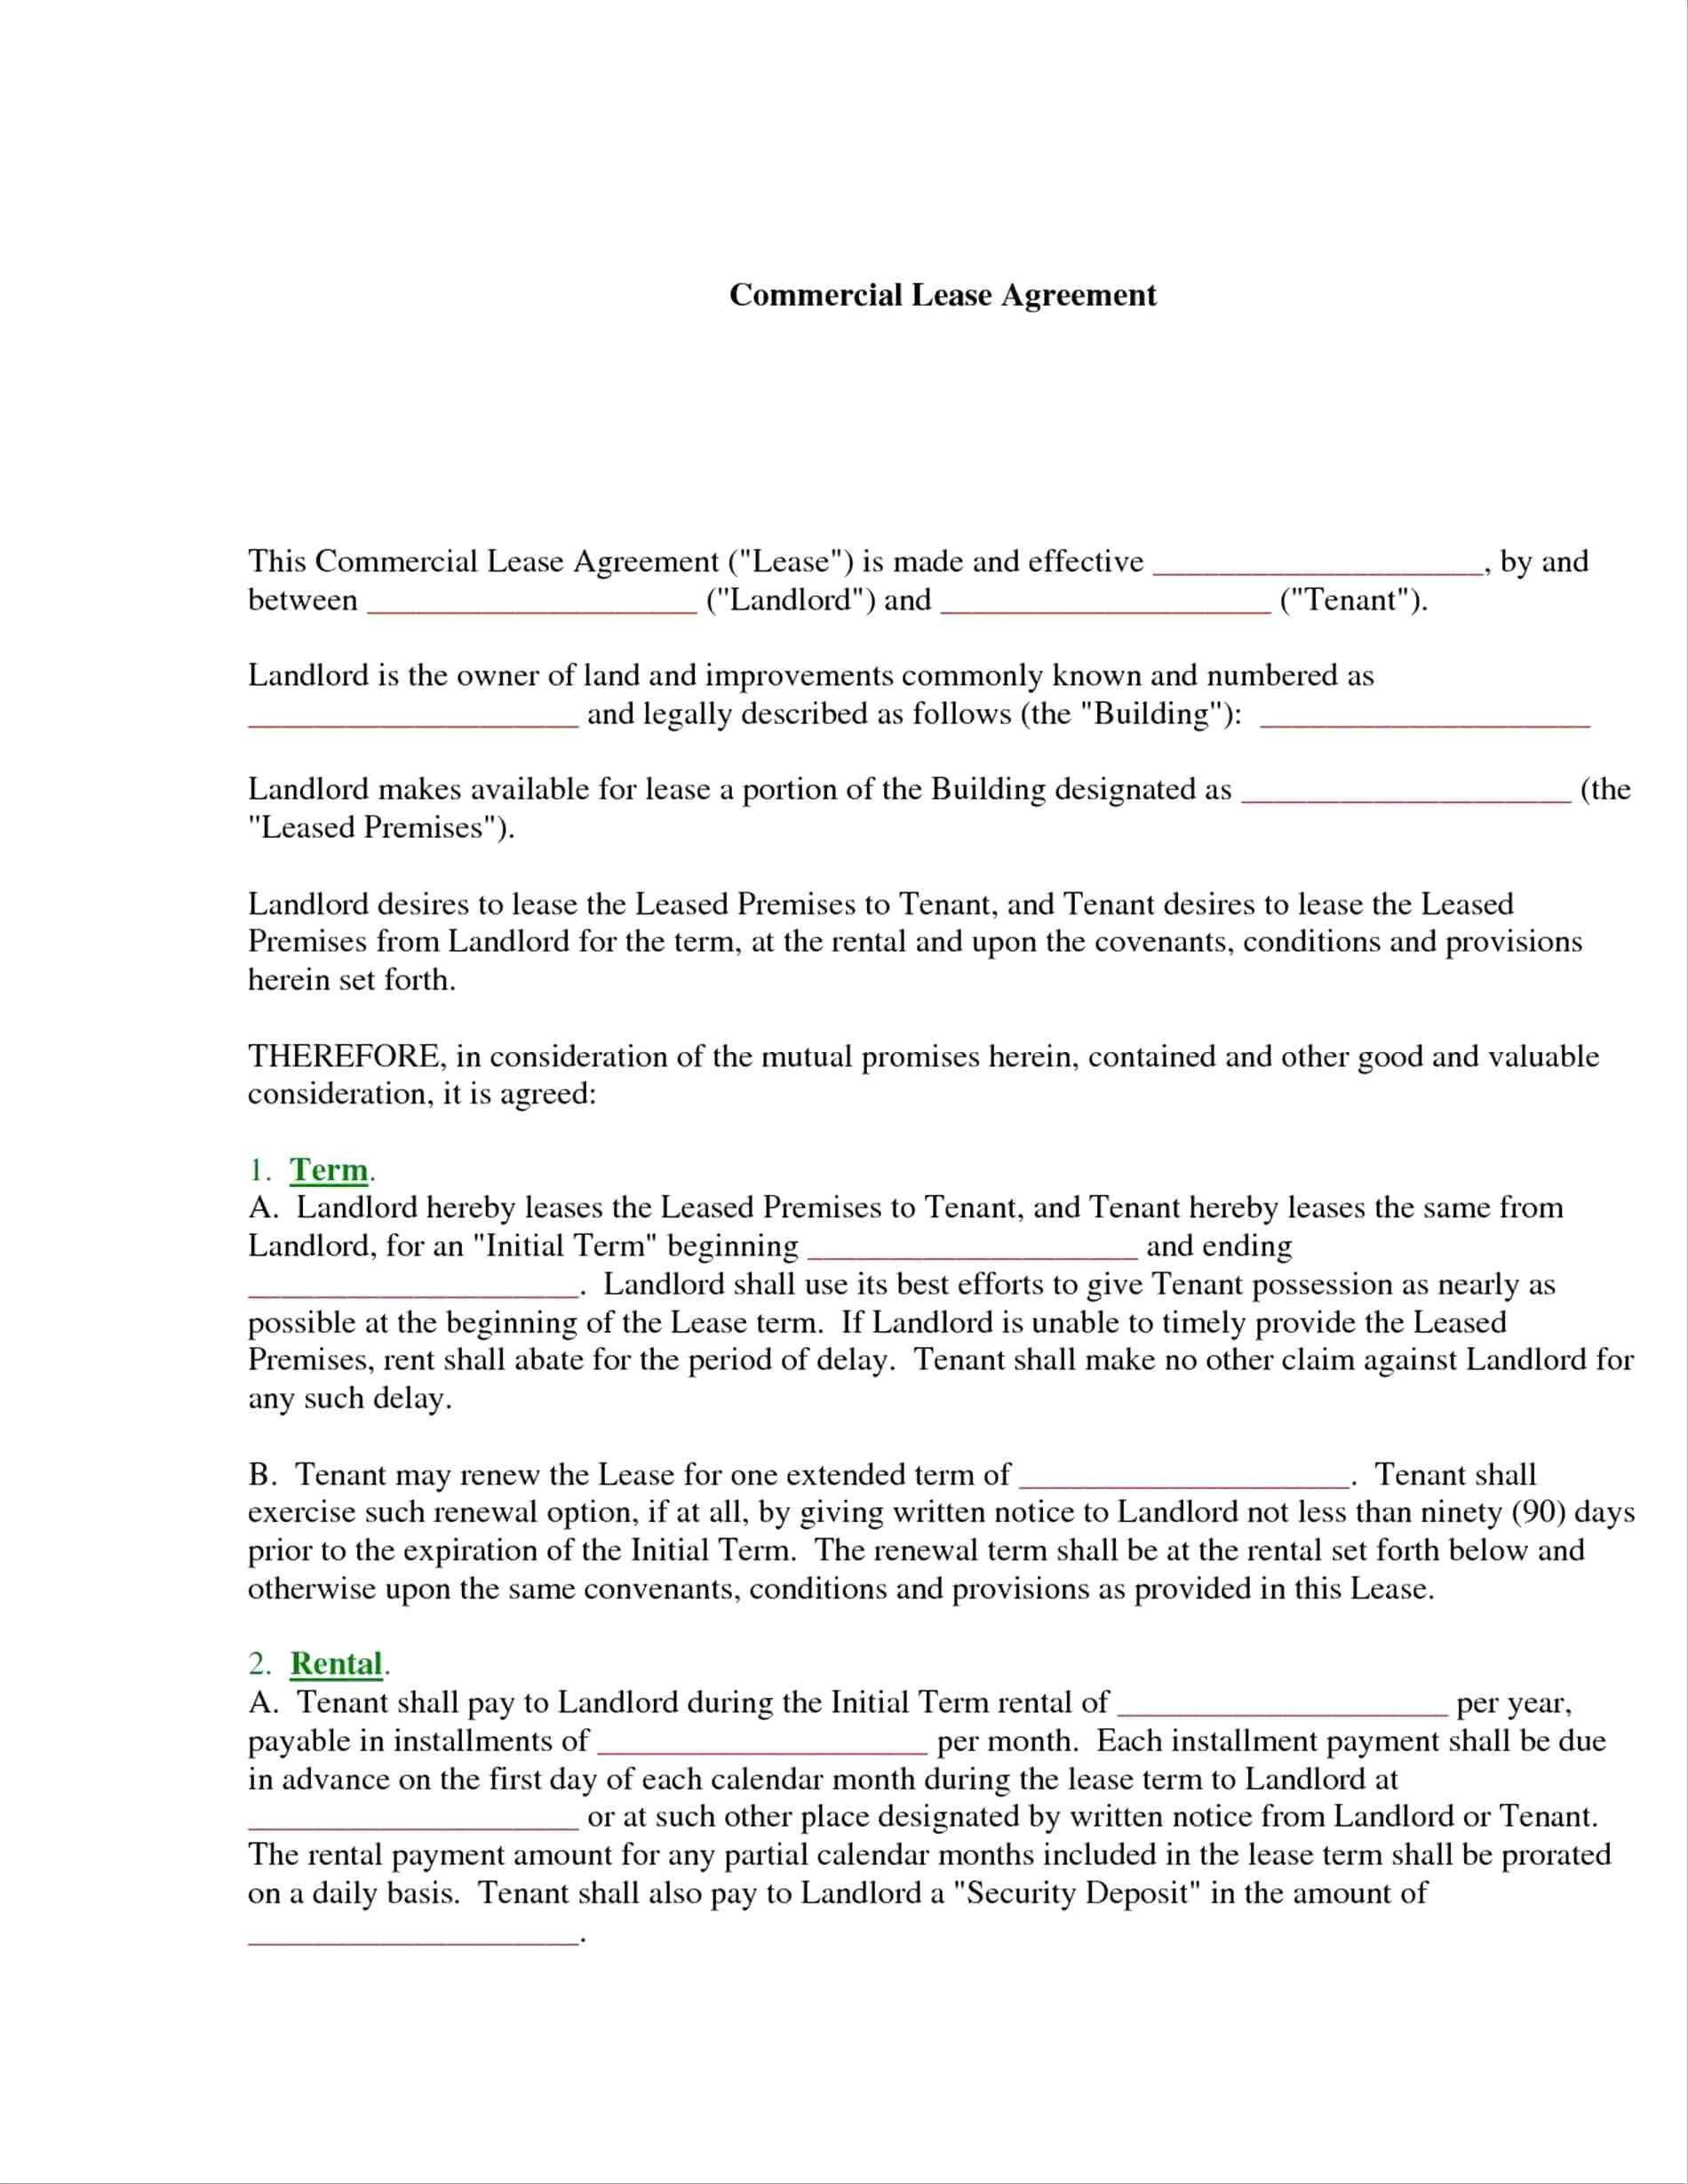 Commercial Lease Contract Template Uk